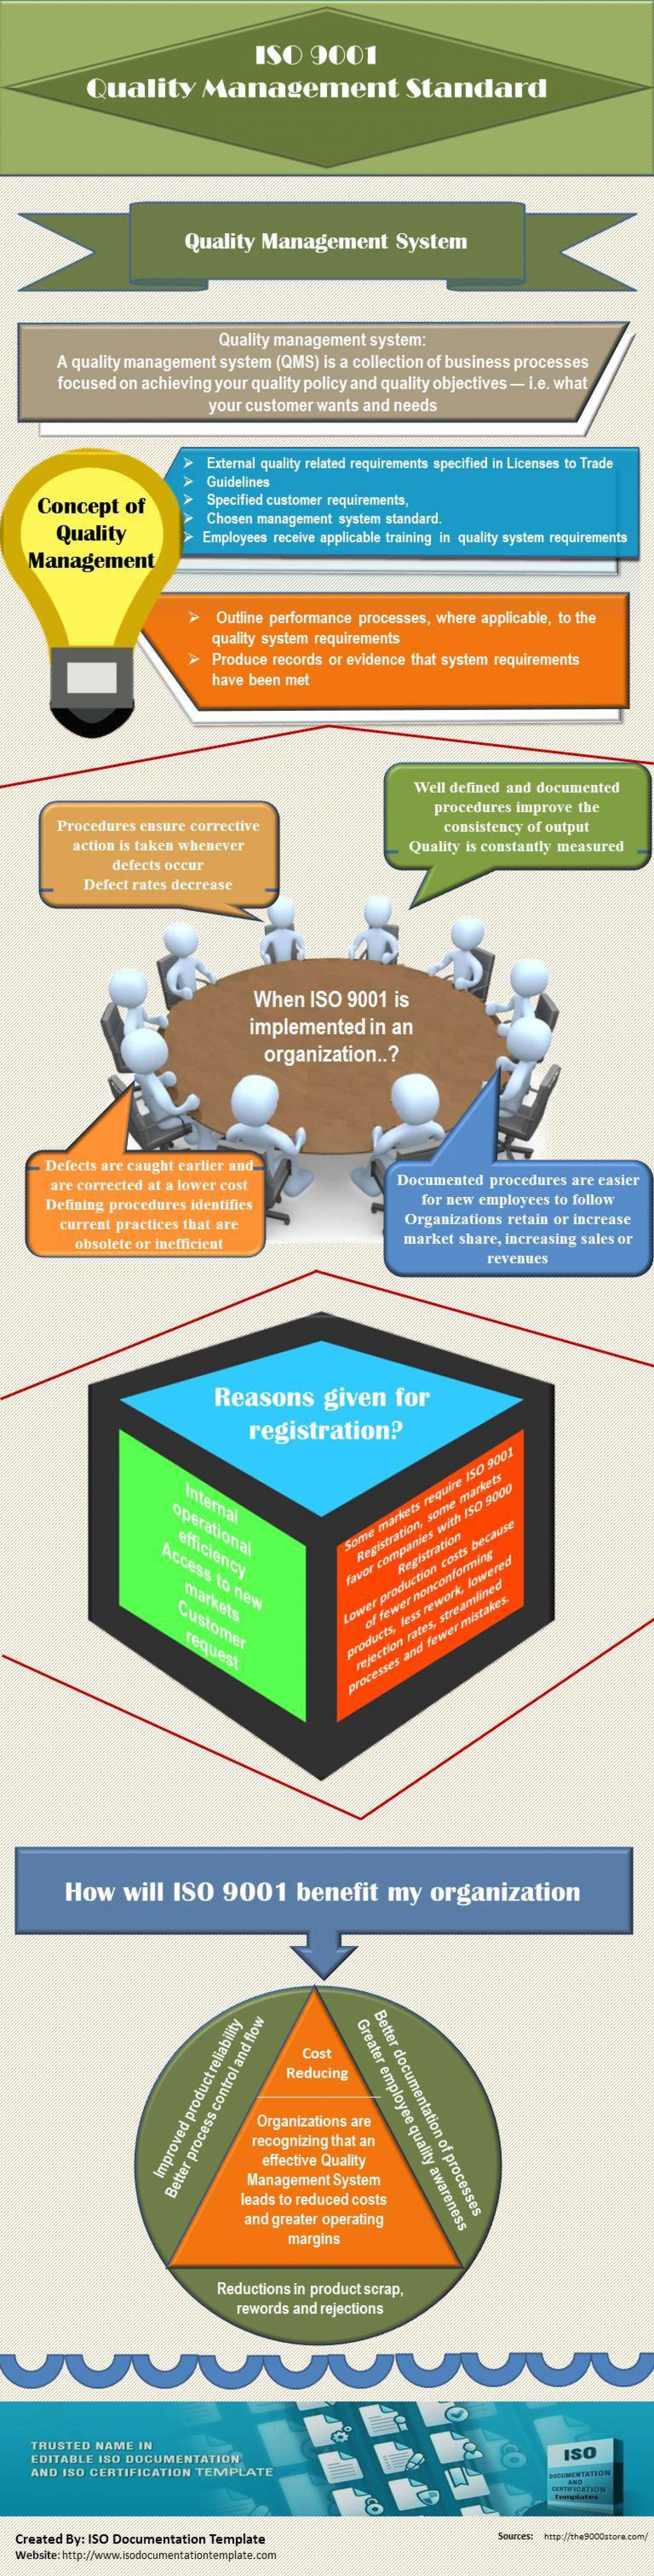 ISO 9001 Quality Management Standard Infographic